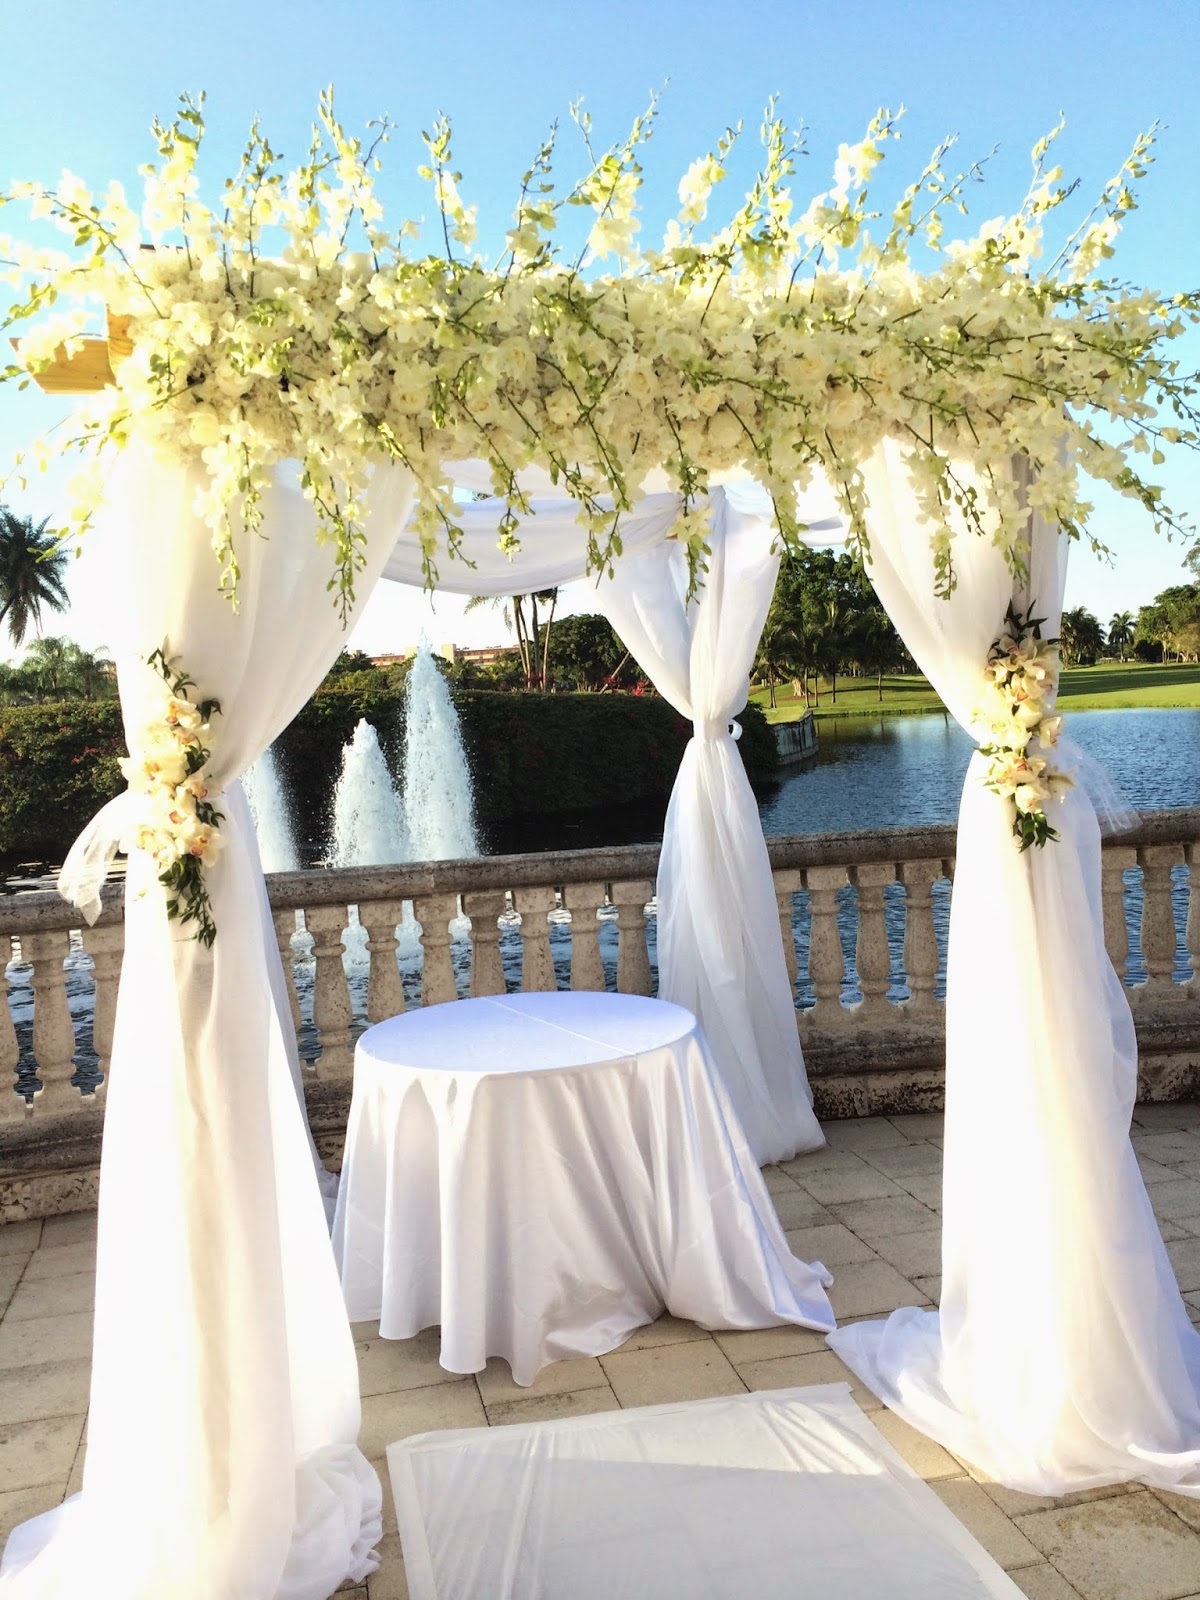 Luxurious and romantic white gazebo decorated with roses and orchids